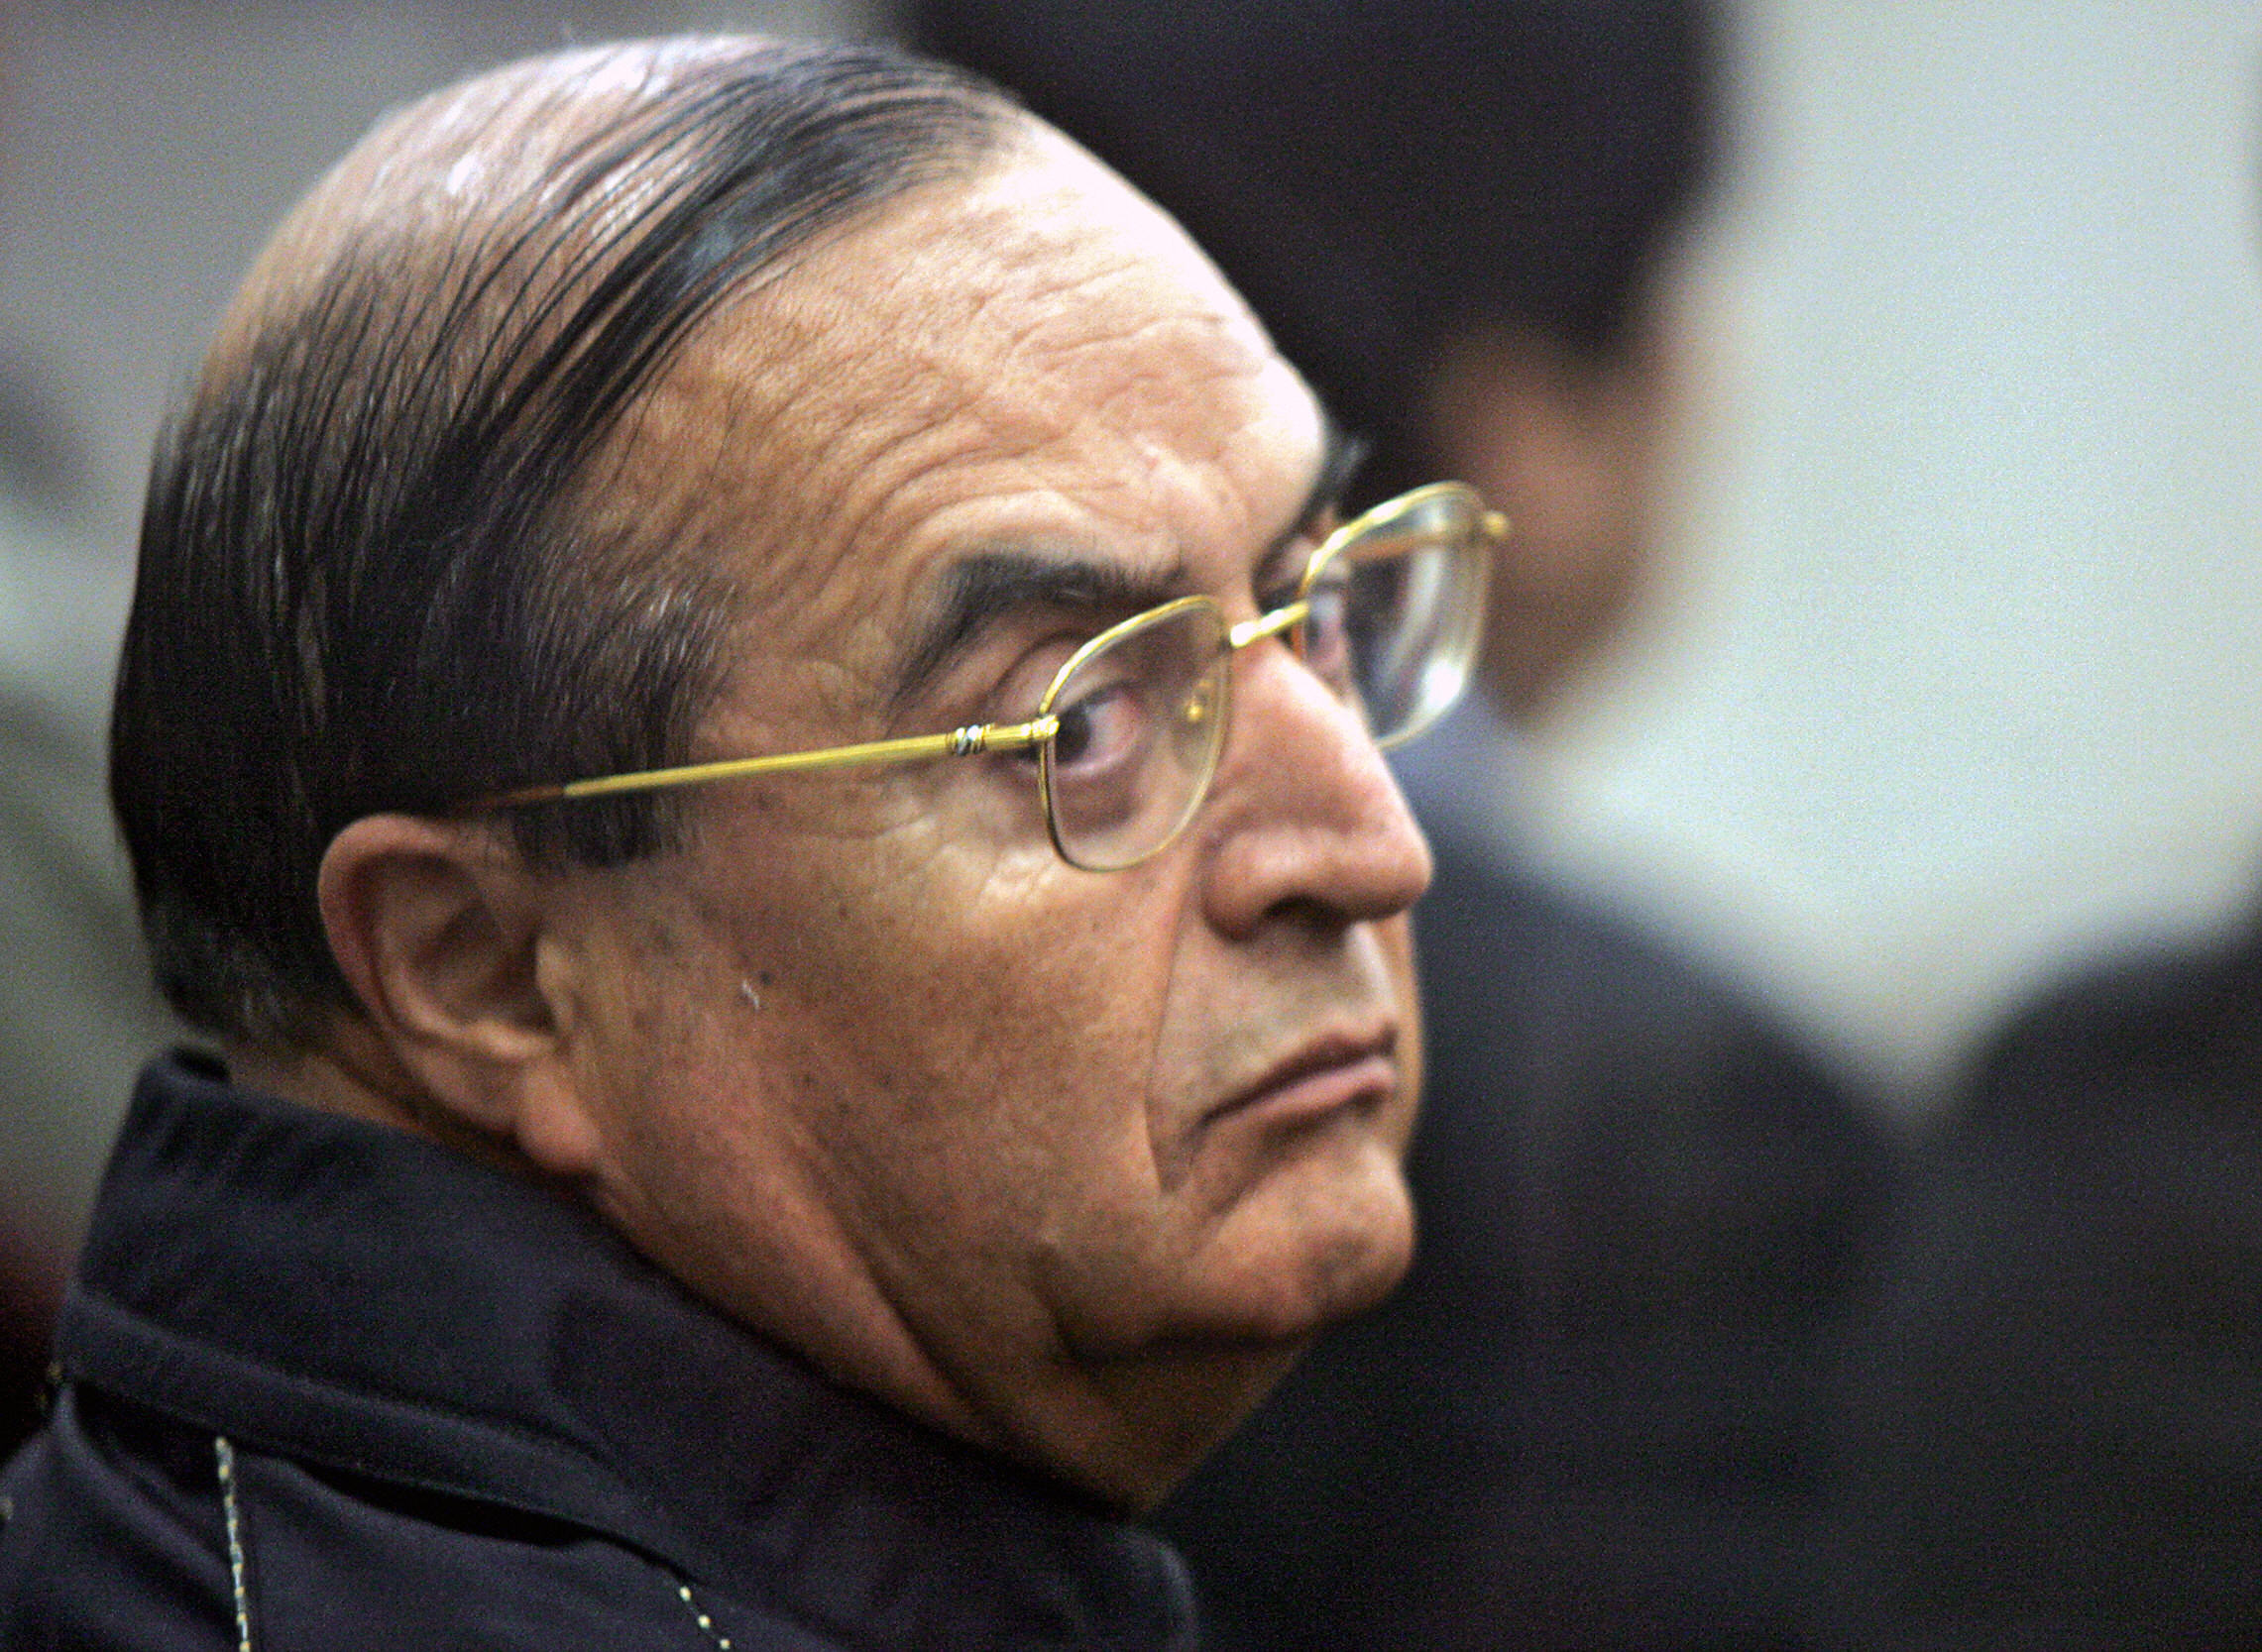 Lima, PERU:  Vladimiro Montesinos, ex-right hand of ex Peruvian President Alberto Fujimori (1990-2000), looks at his lawyer Estela Valdivia (out of frame) during a trial session at Callao Naval Base, 21 September 2006 in Lima. After two years and eight months of trial, Montesinos is expected to be sentenced today for charges on arm trading to the Revolutionary Armed Forces of Colombia (FARC) guerrilla in 1999. AFP PHOTO/Eitan ABRAMOVICH   (Photo credit should read EITAN ABRAMOVICH/AFP/Getty Images)